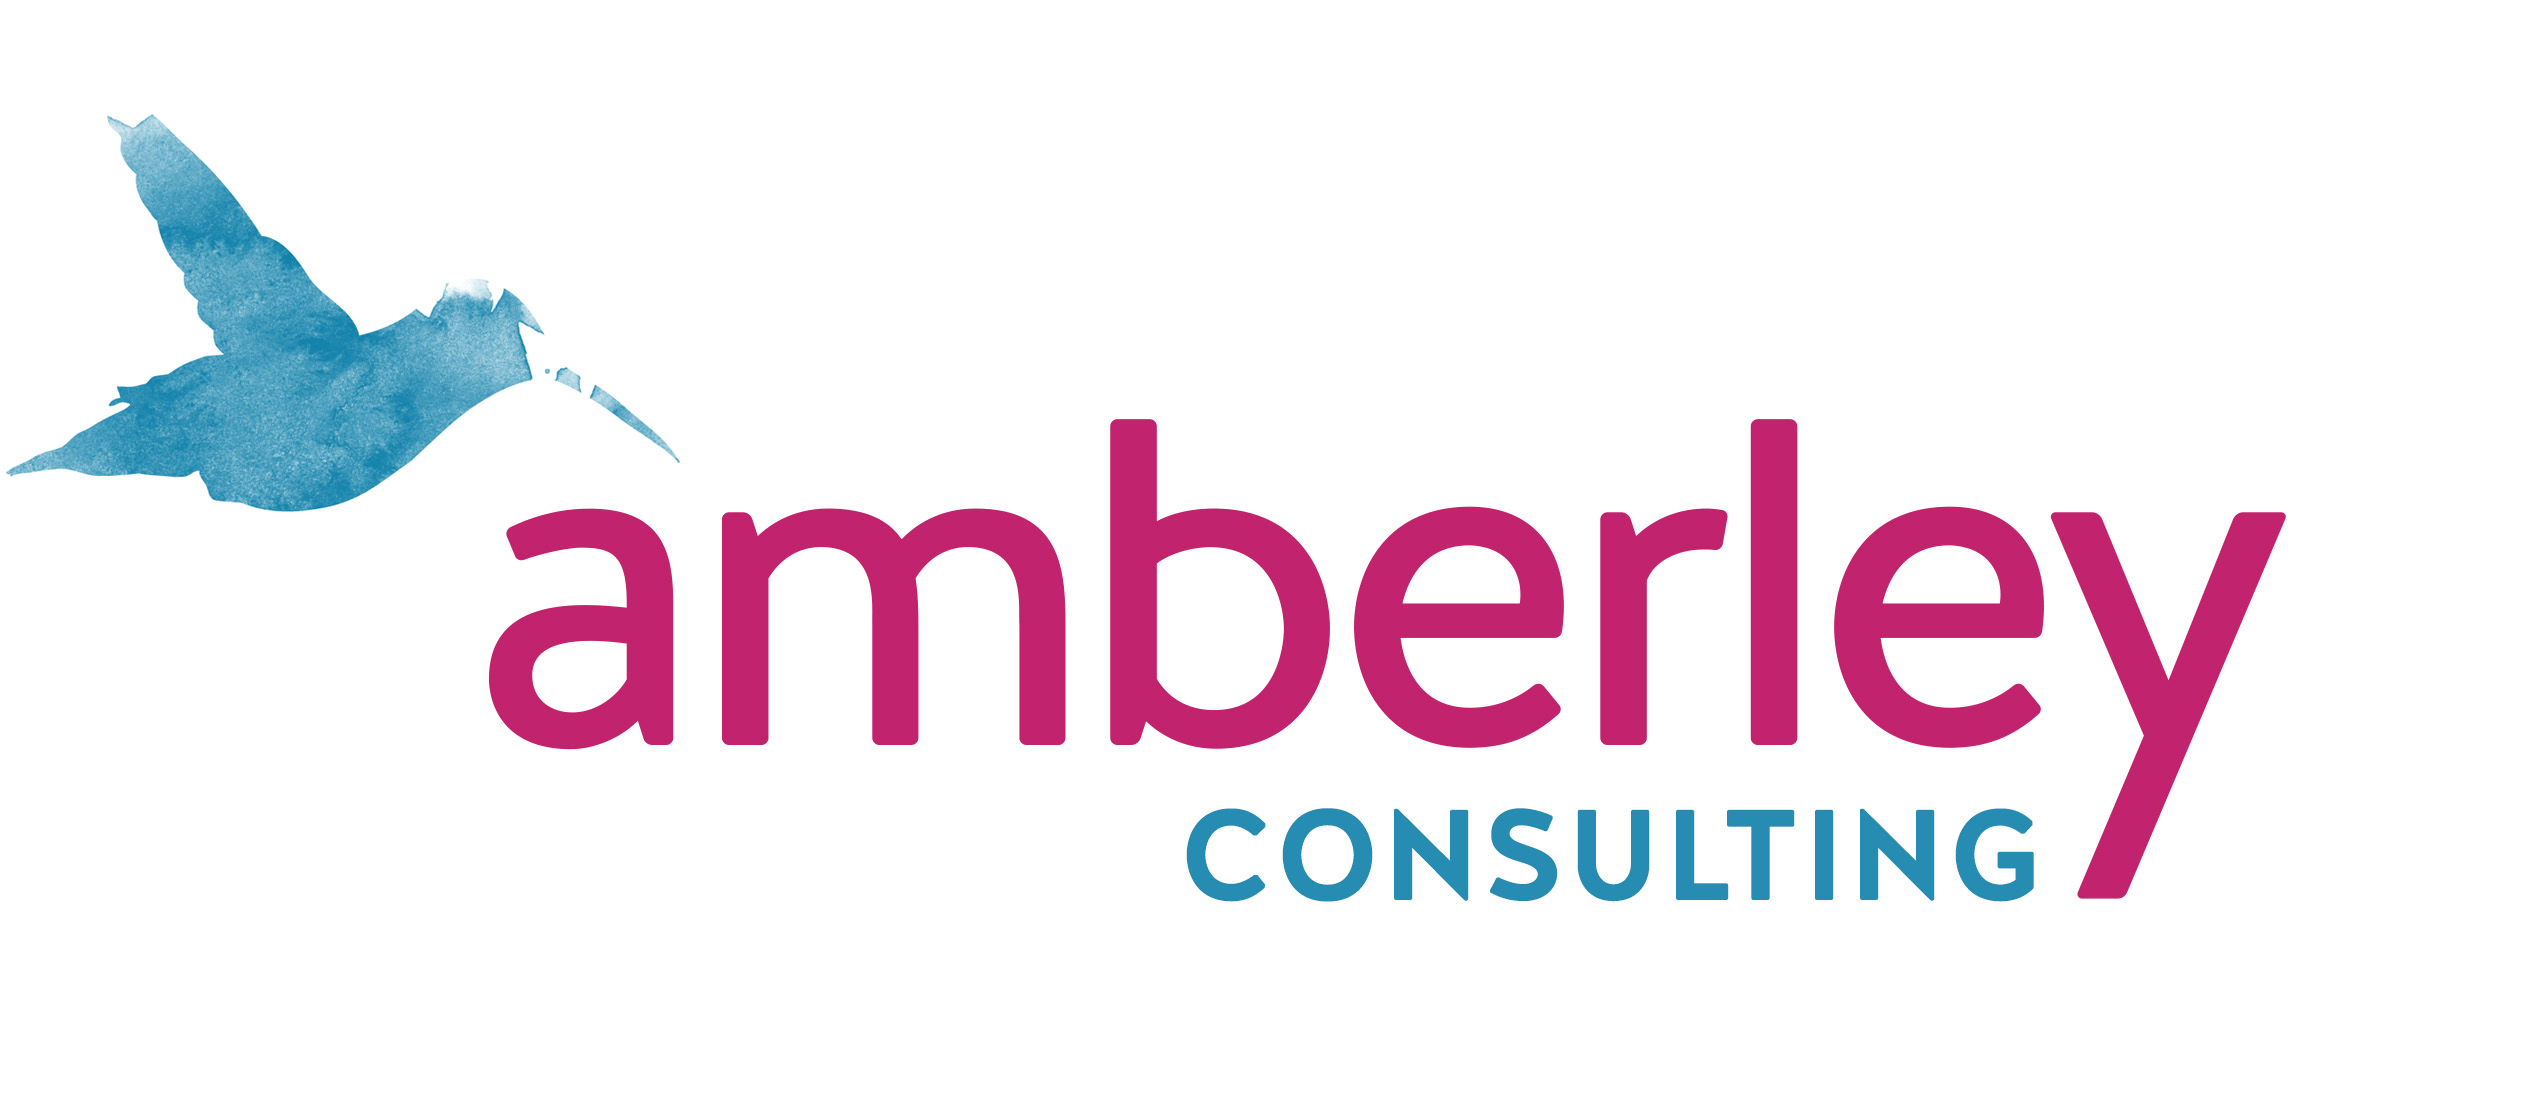 Amberley Consulting